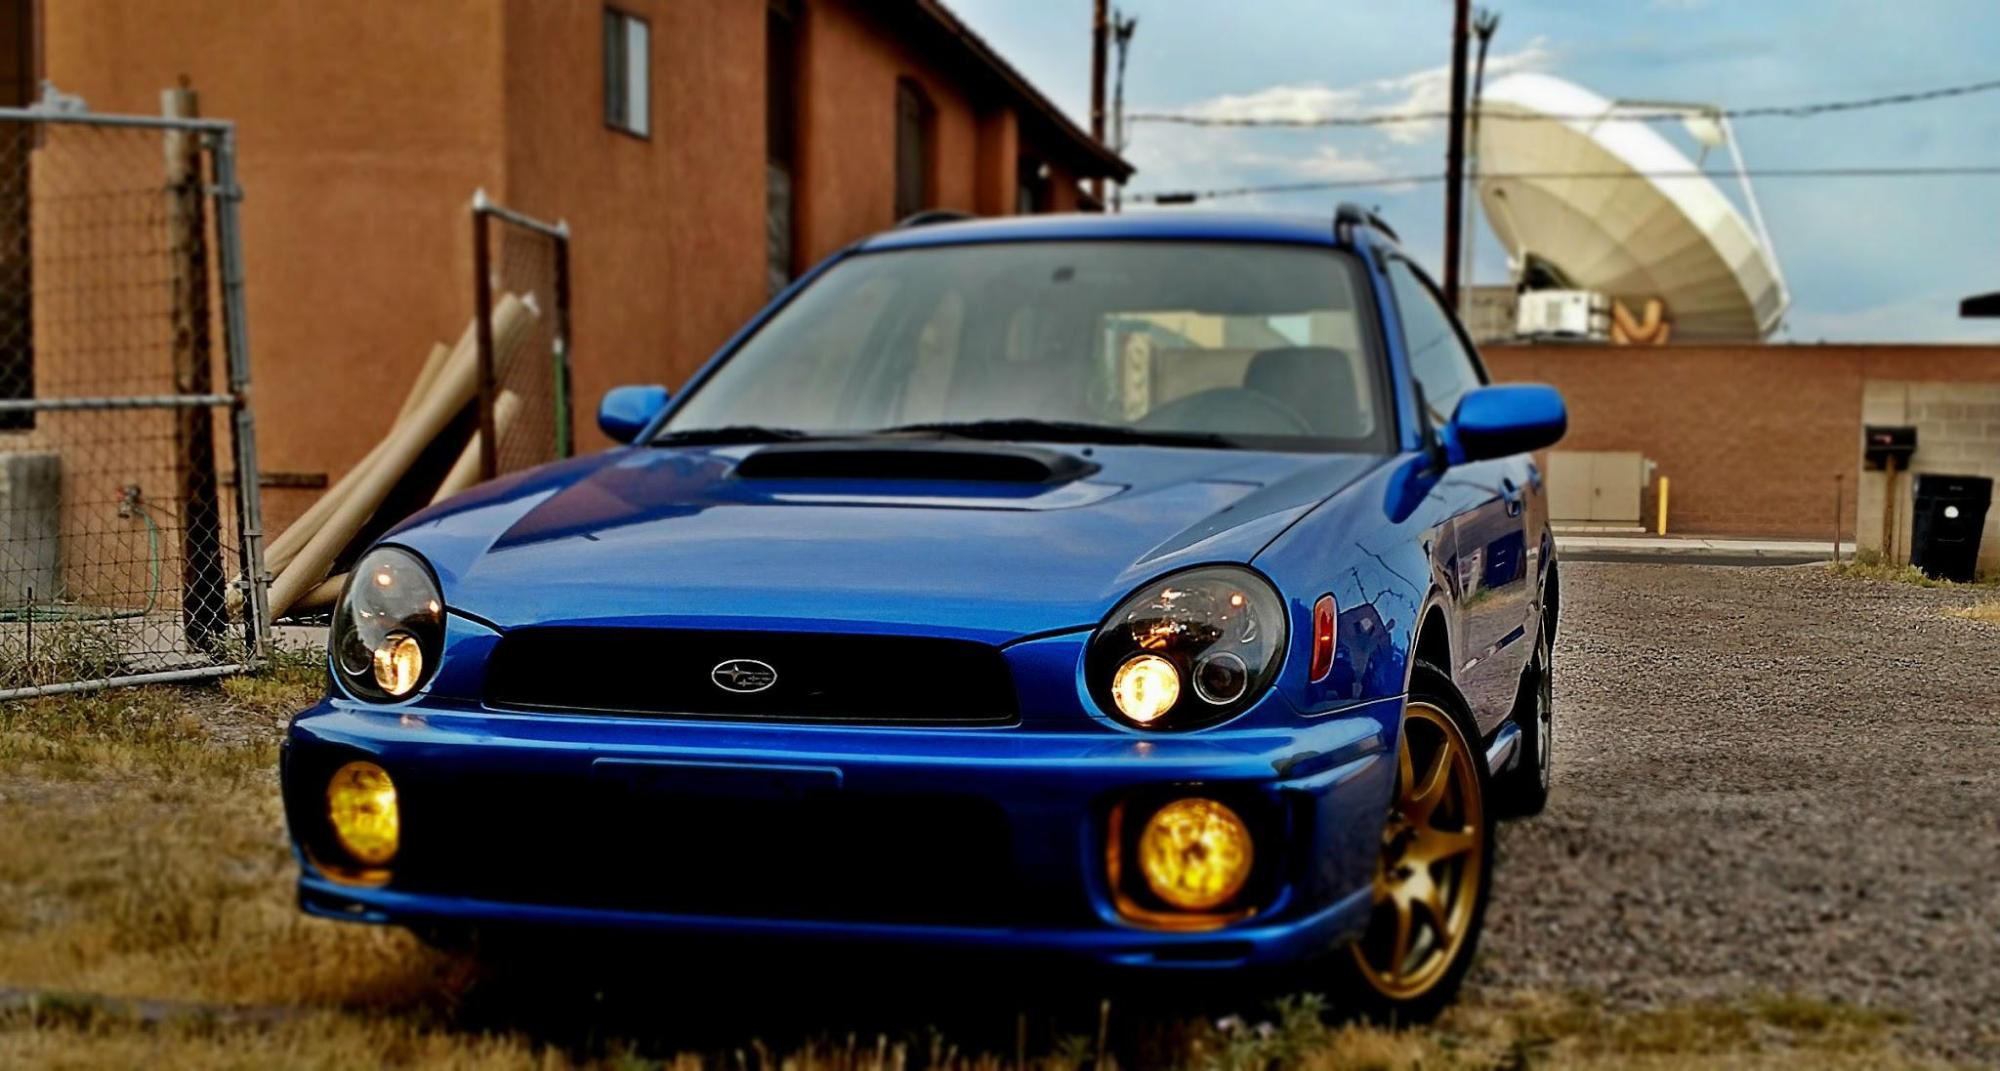 hight resolution of just got a 2003 wrx one owner 75k miles now to start messing with it